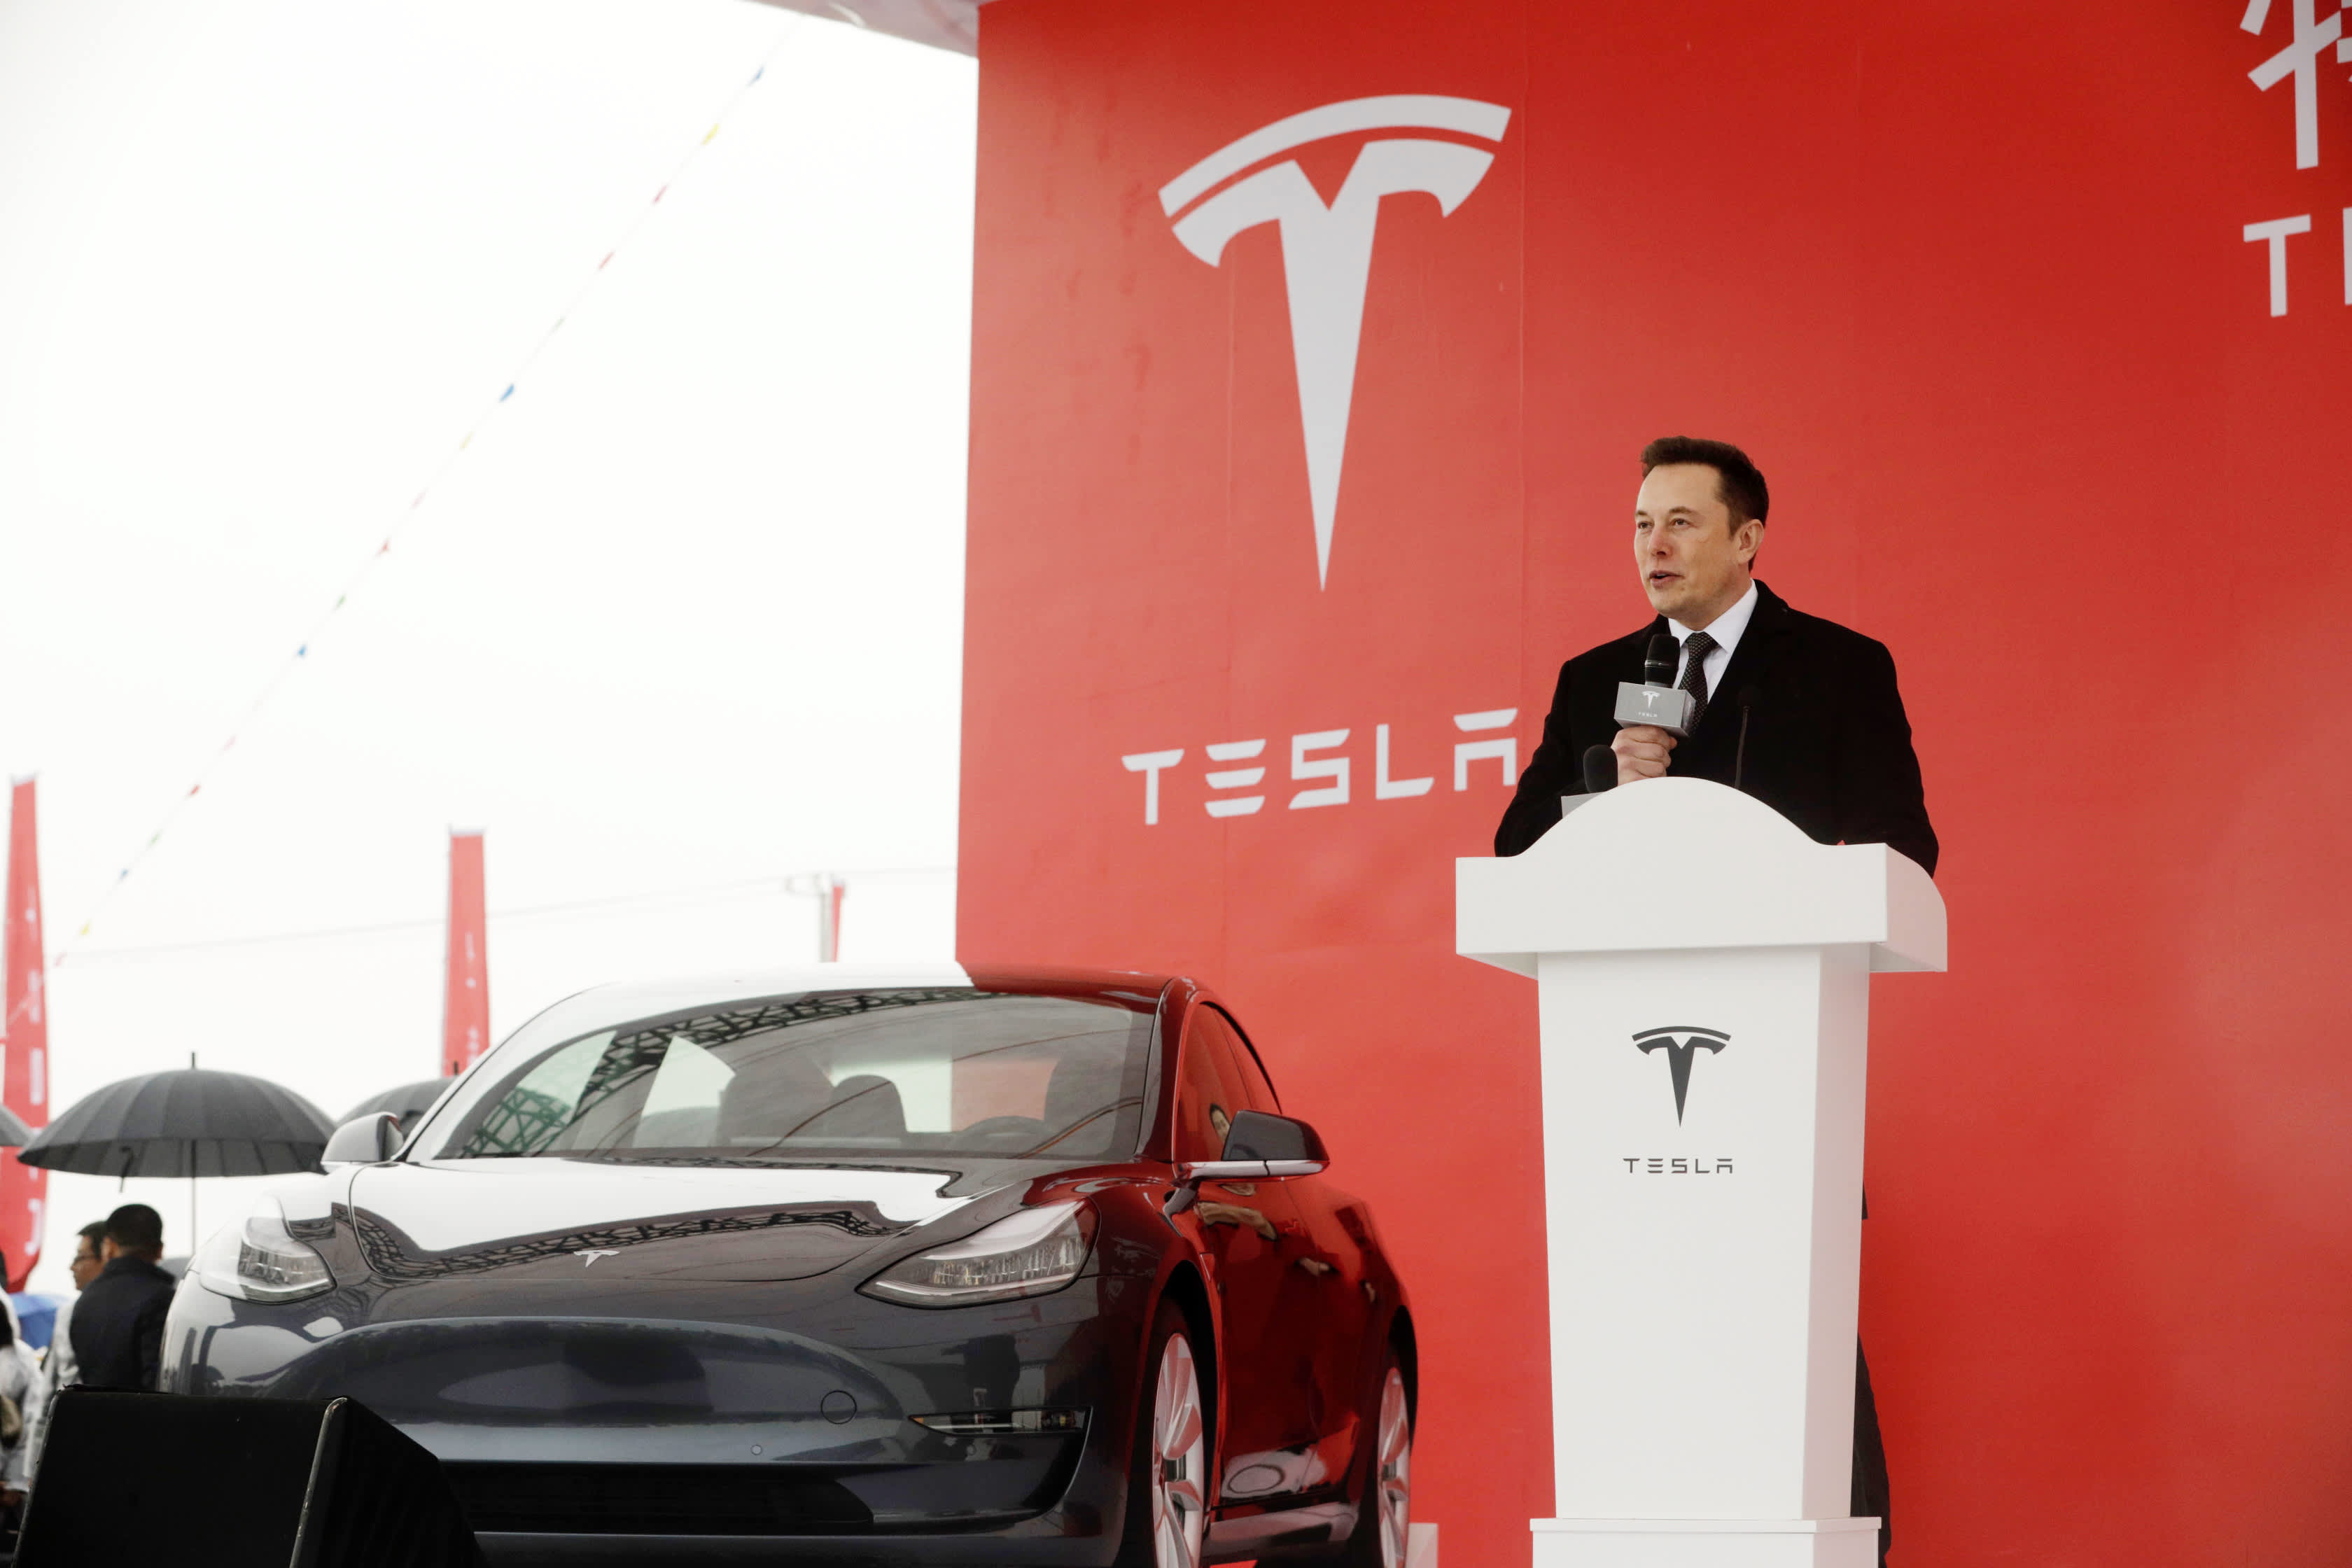 Tesla could go even higher than our $4,000 price target